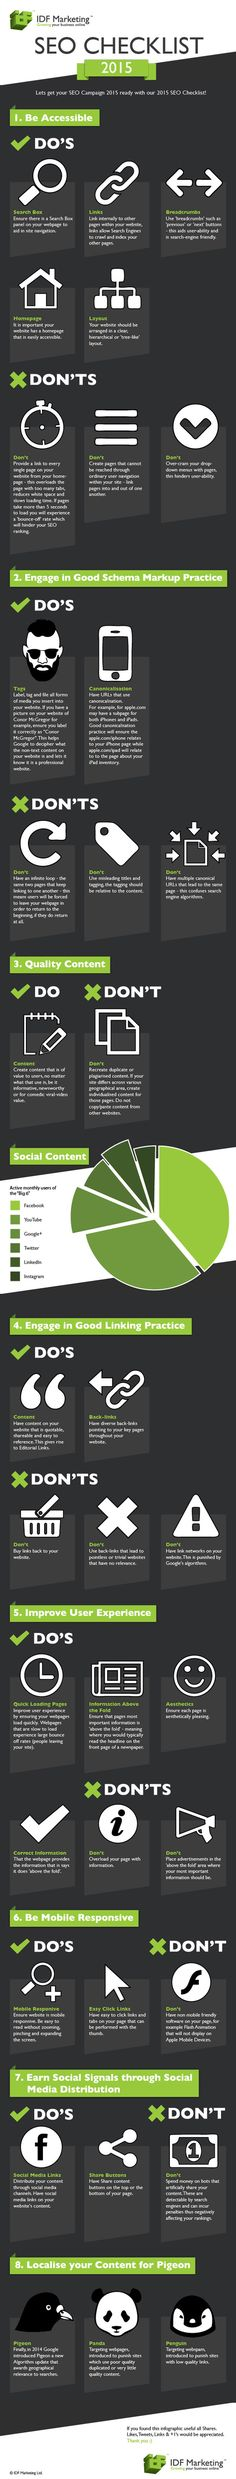 Search Engine Optimization Checklist: 2015 - #infographic #SEO